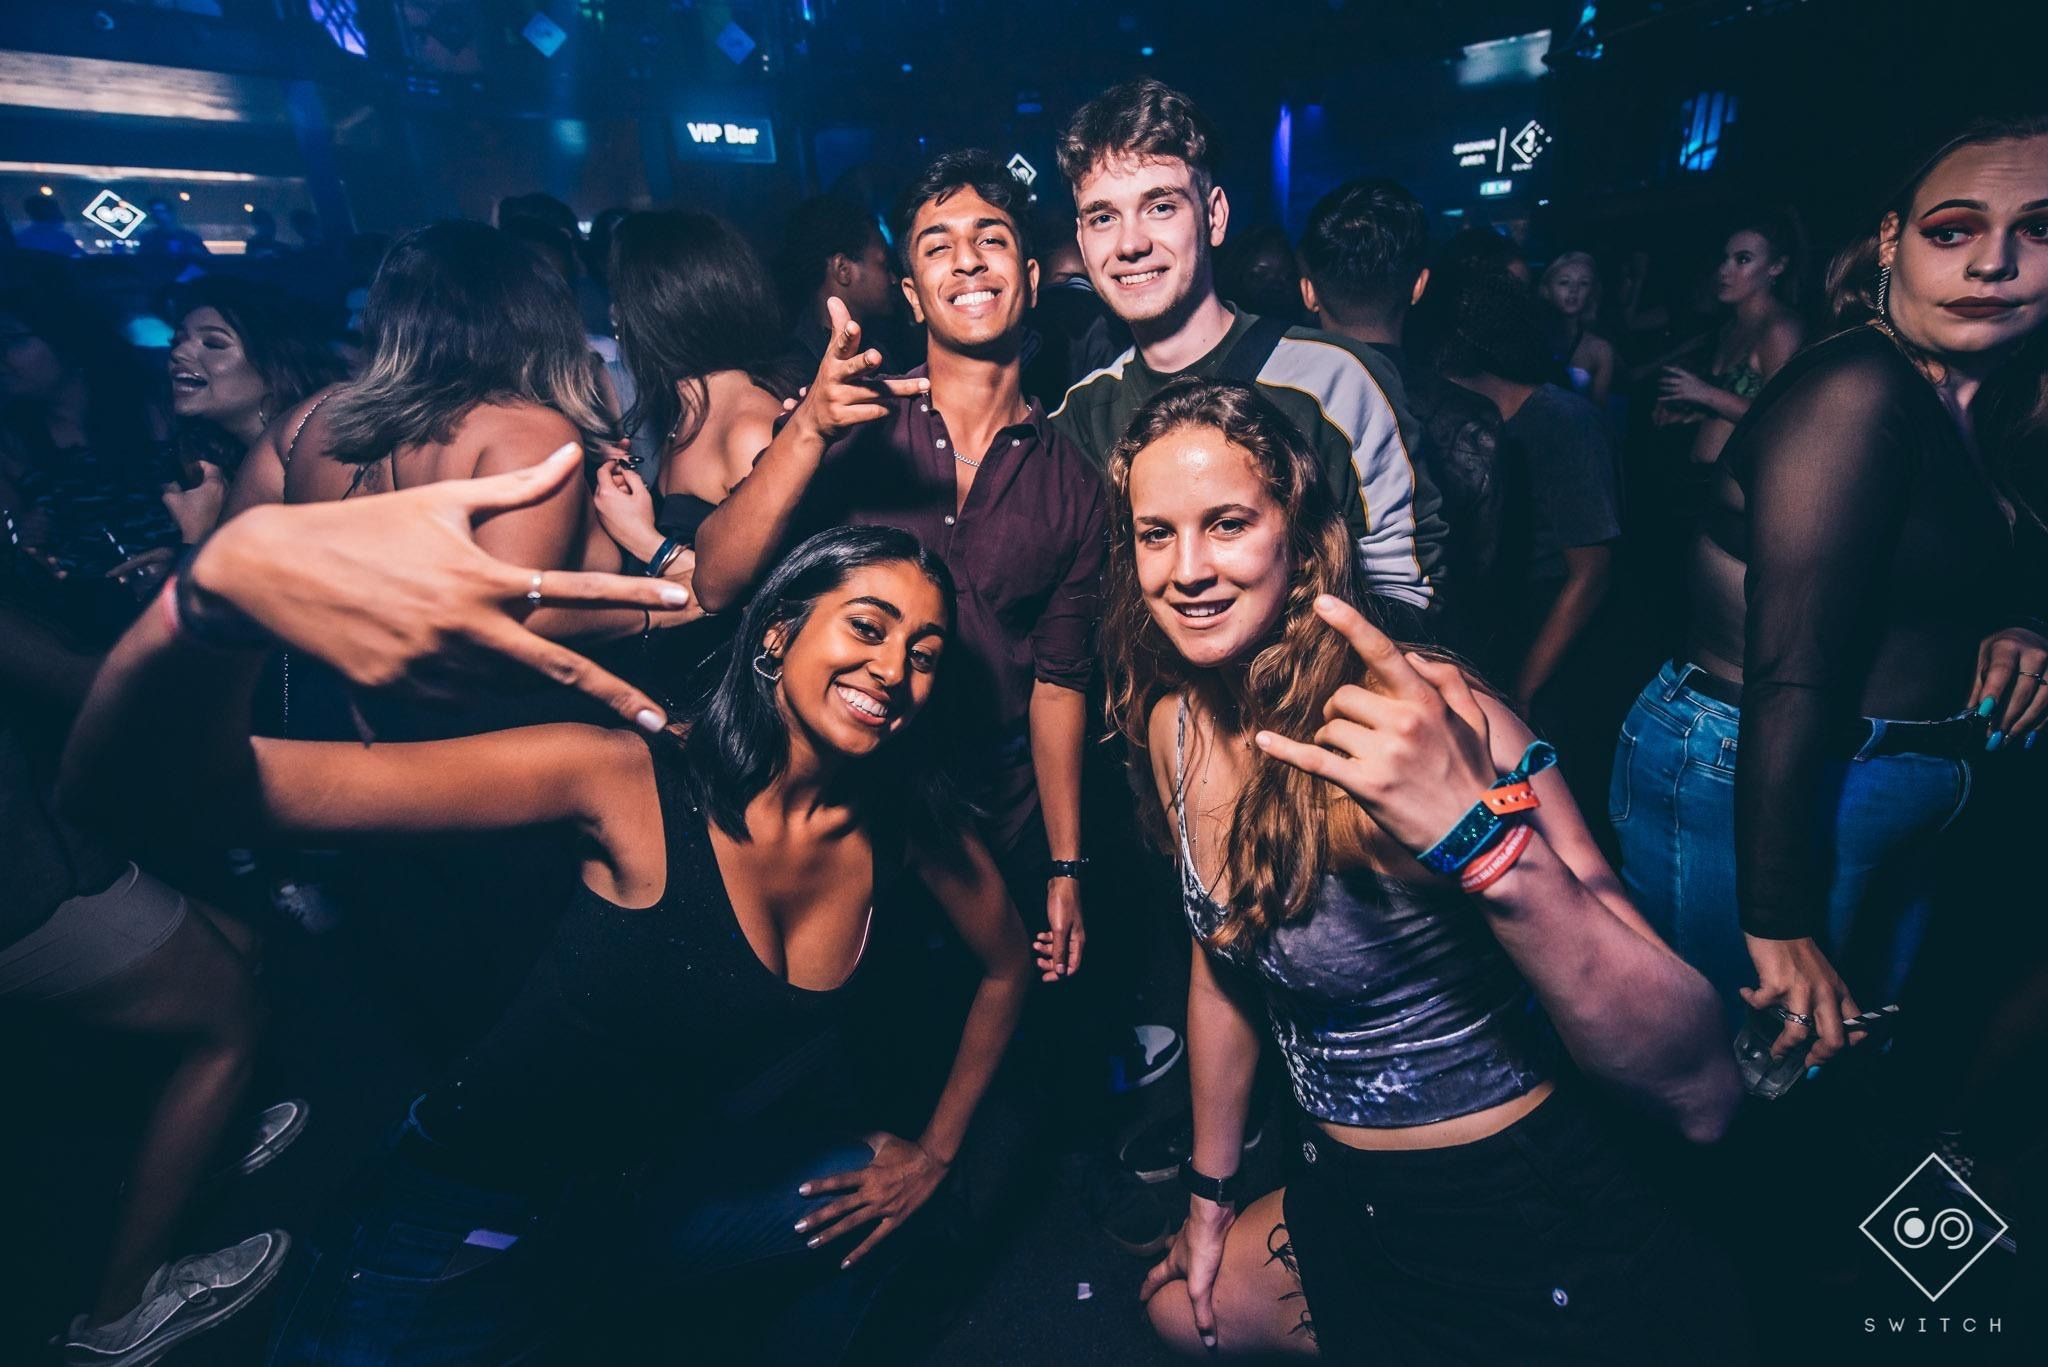 Image may contain: Disco, Night Life, Footwear, Shoe, Apparel, Clothing, Night Club, Party, Club, Human, Person